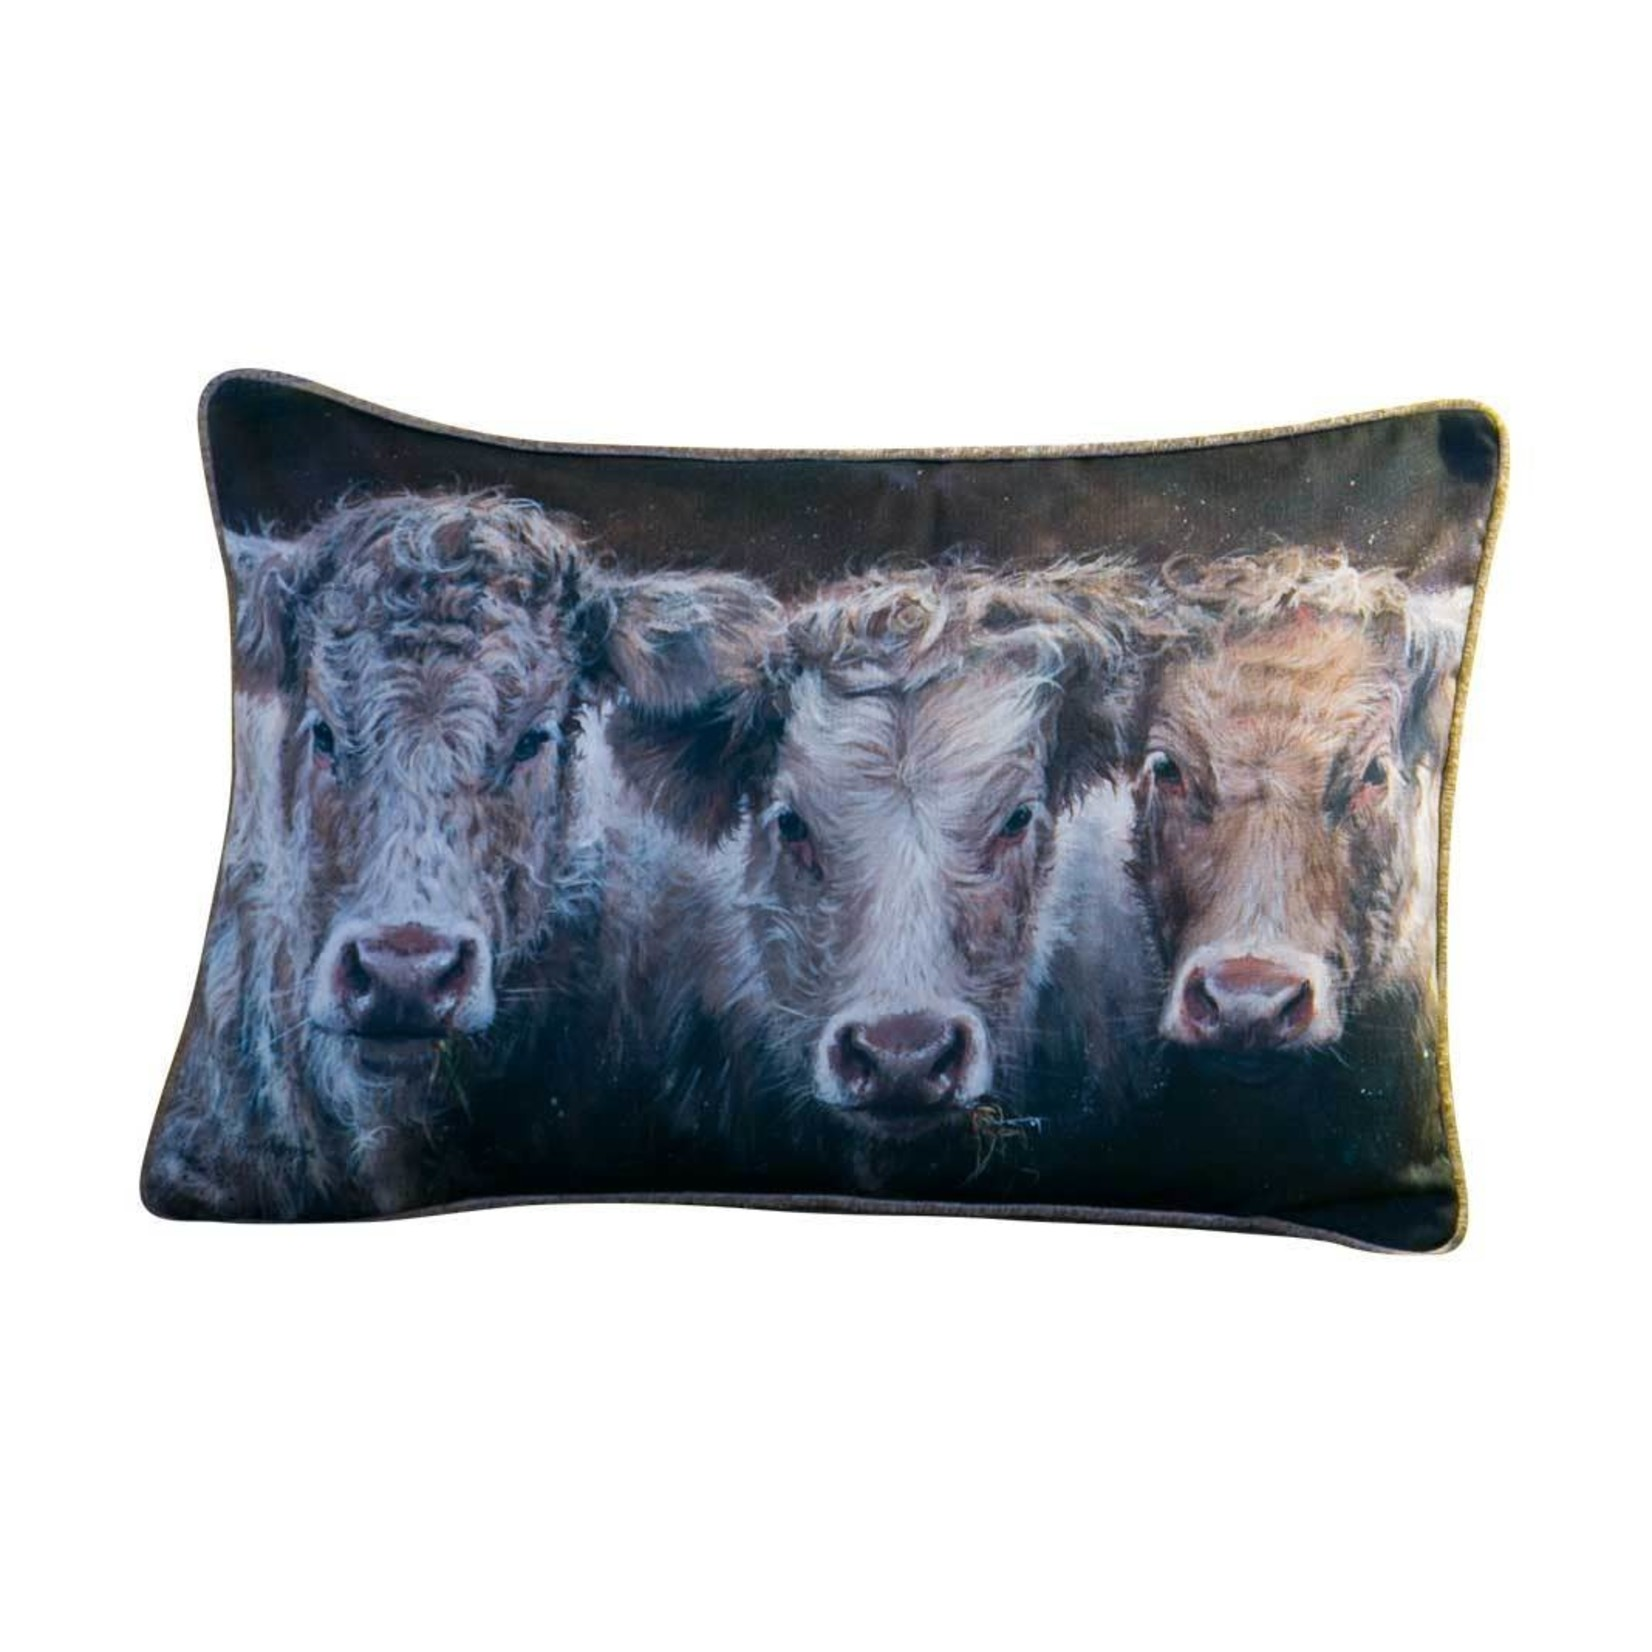 Bree Merryn COW DO YOU DO OBLONG FEATHERED CUSION 40x60CM